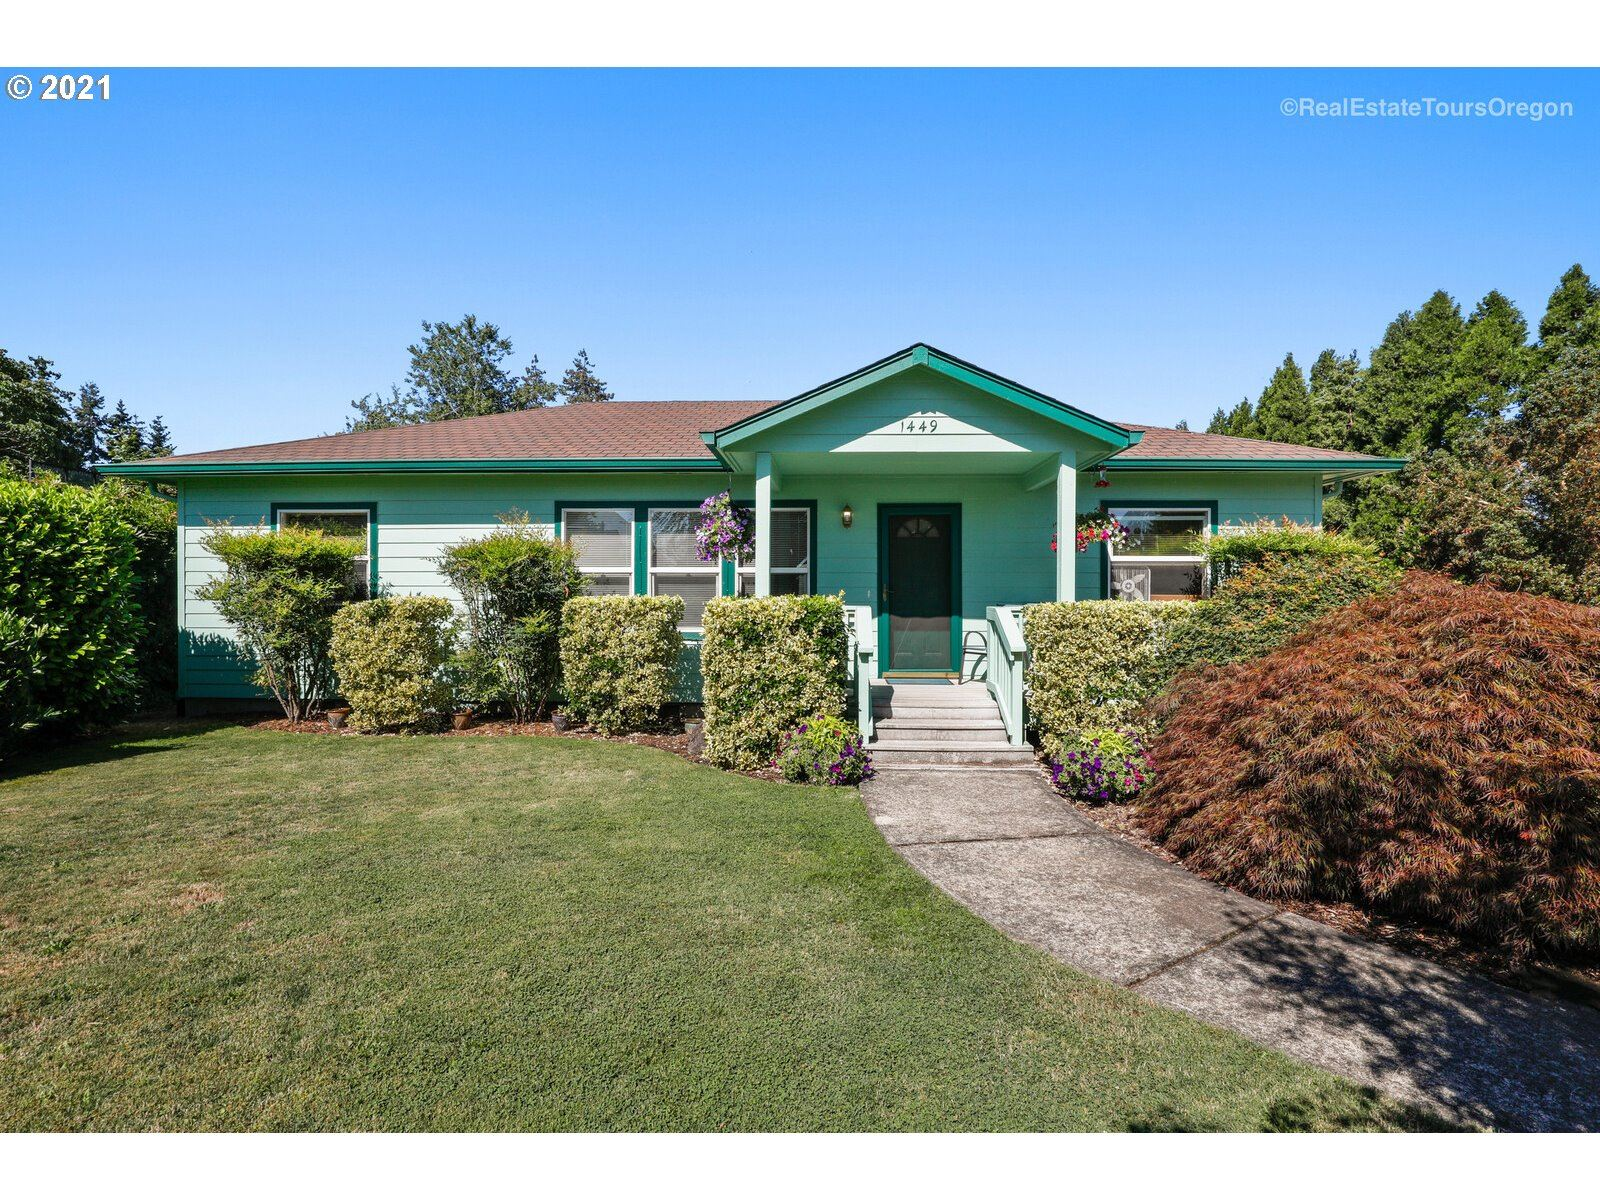 1449 N IVY ST, Canby, OR 97013 - MLS#: 21085150